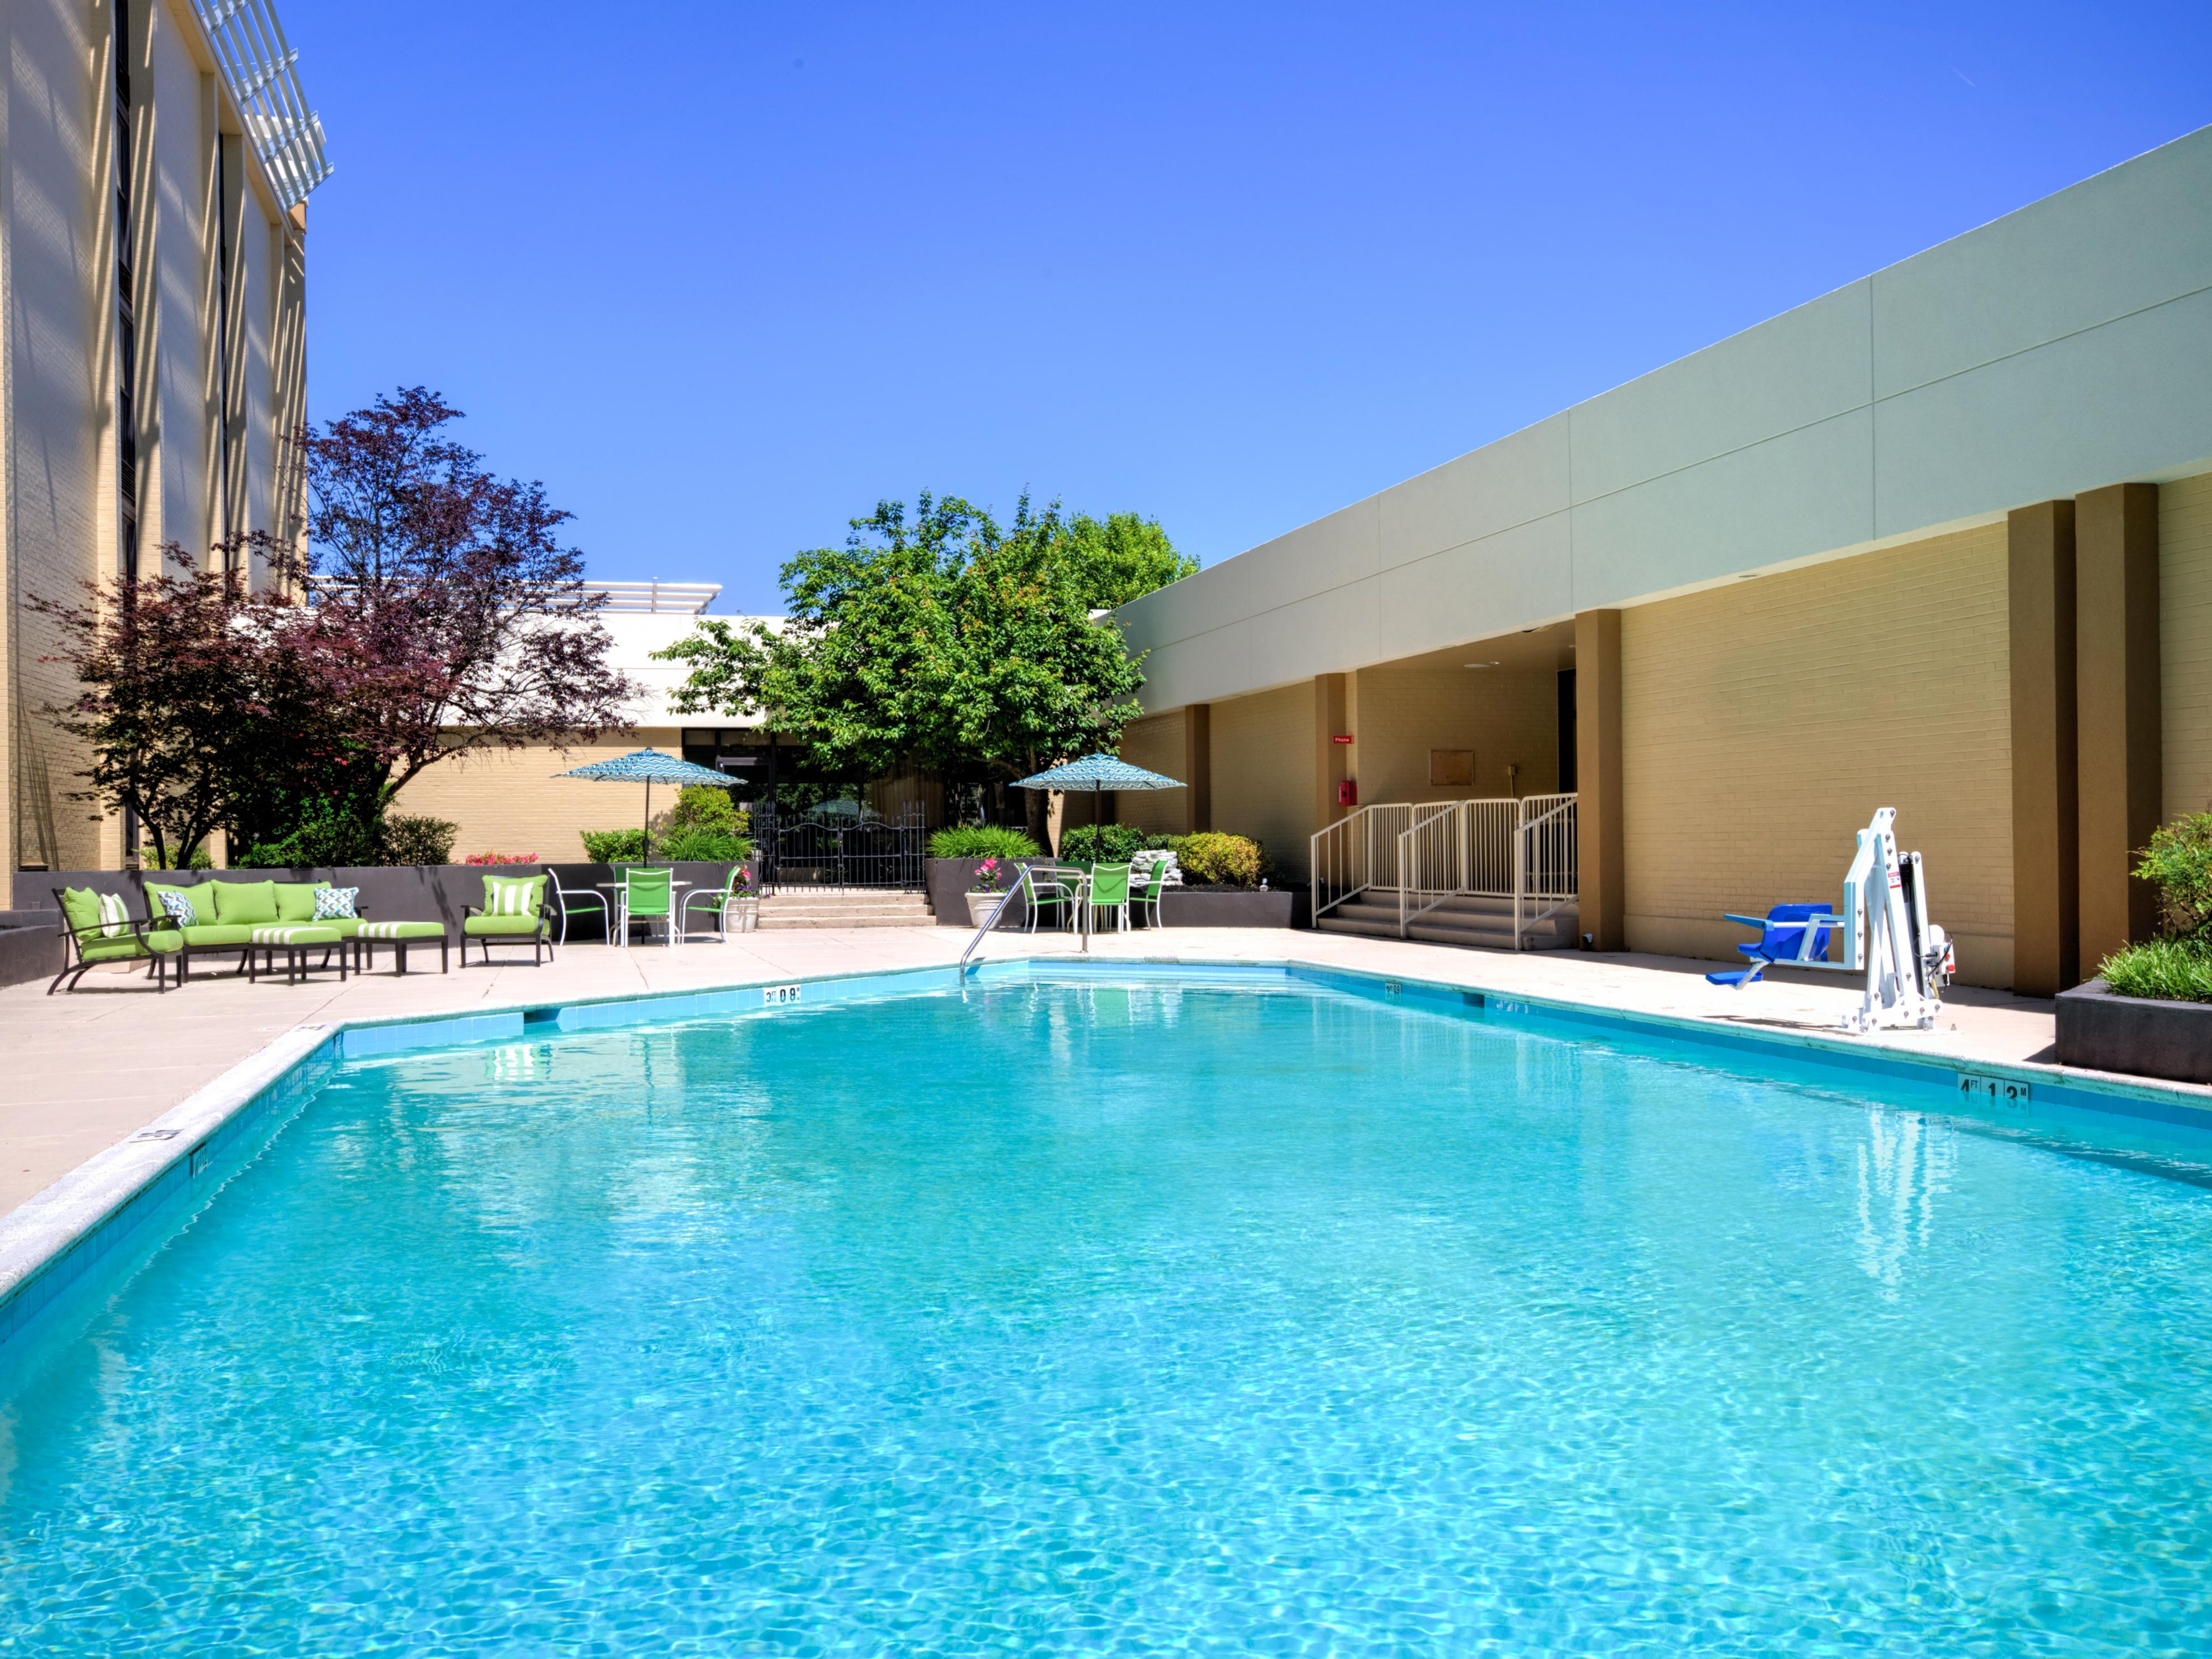 Take a dip in our outdoor heated pool (seasonal)